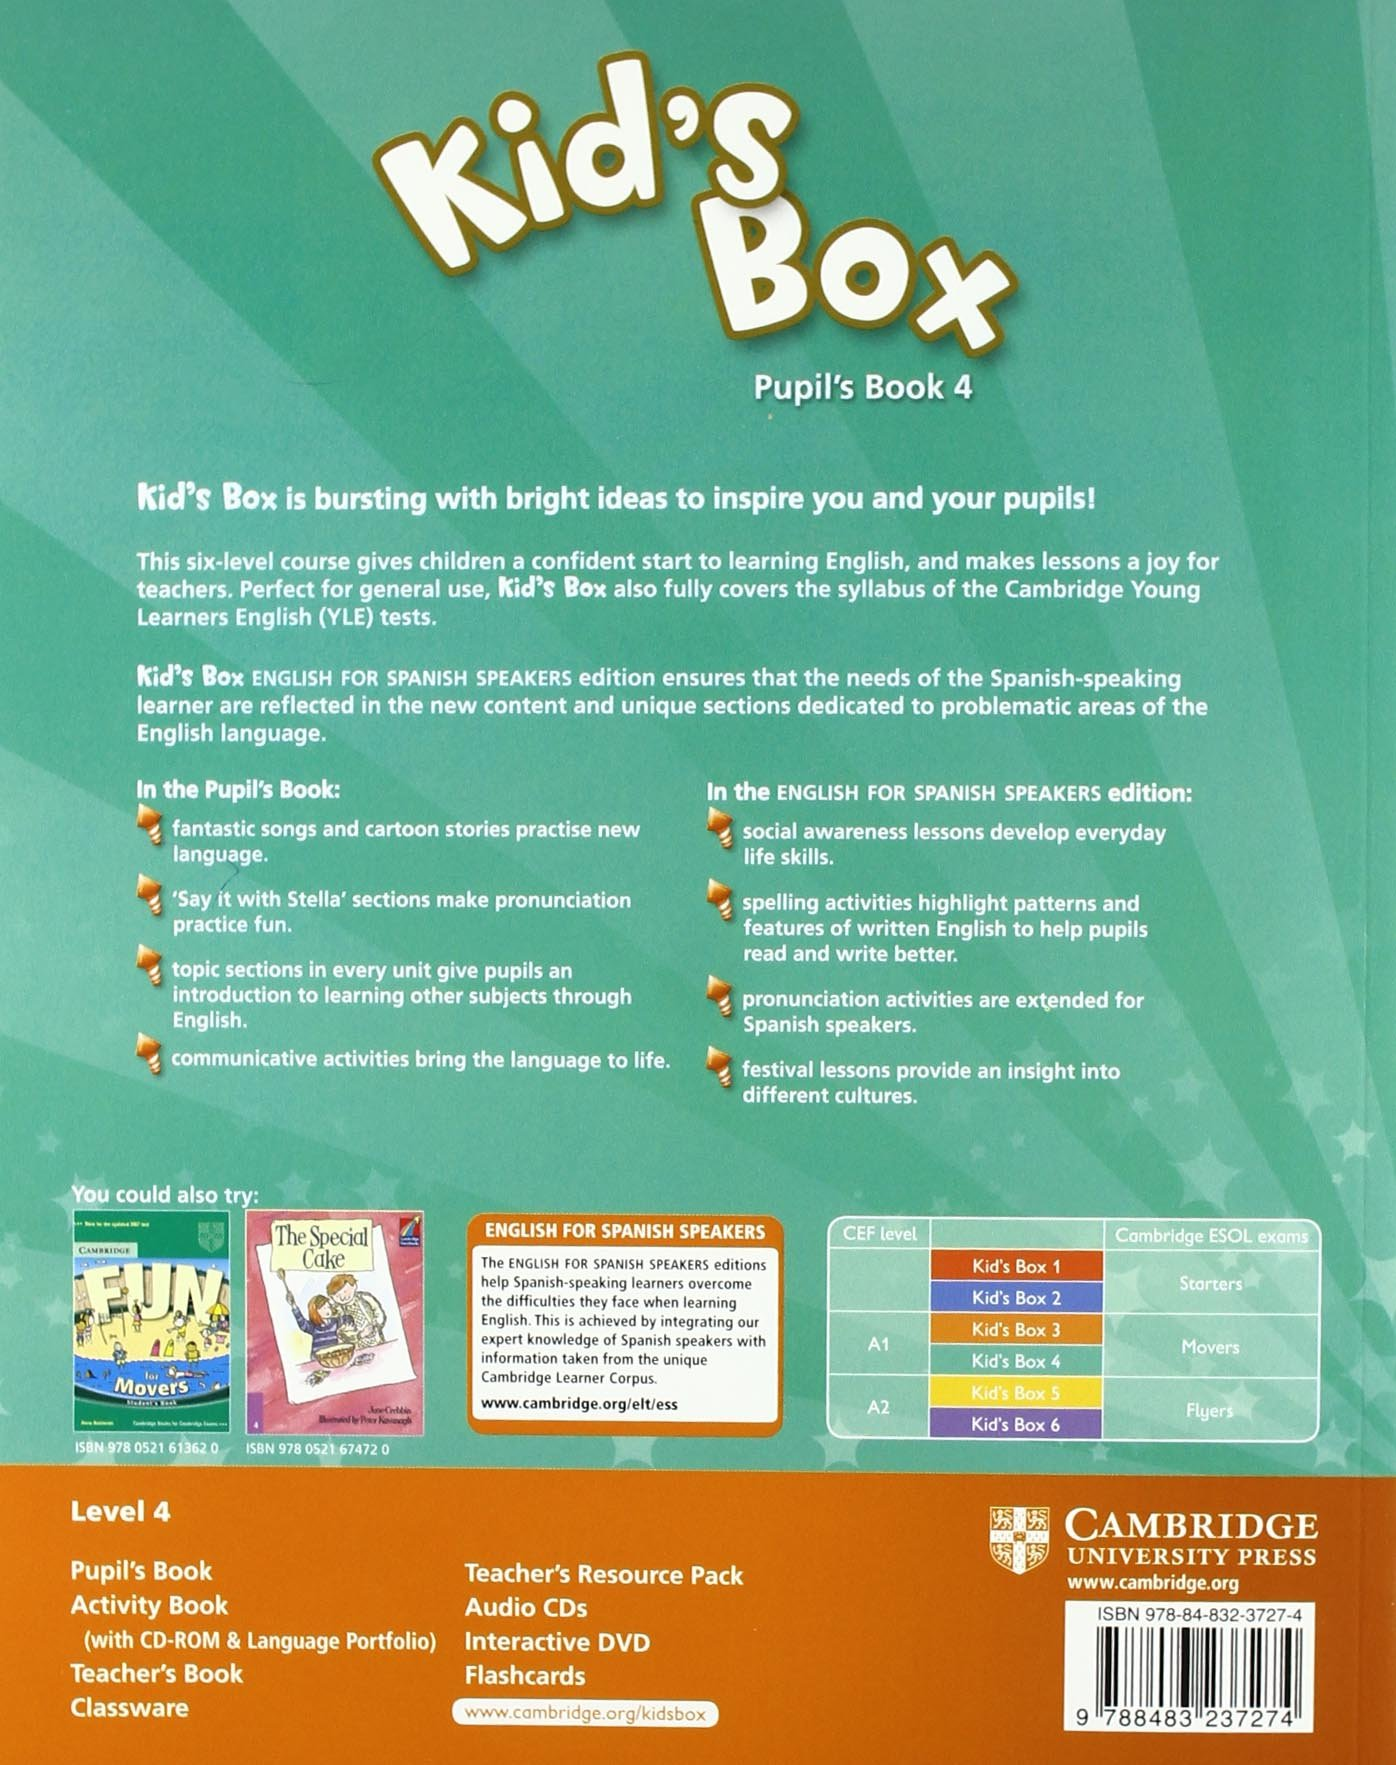 Kid's Box for Spanish Speakers 4 Pupil's Book - 9788483237274: Amazon.es:  Caroline Nixon, Michael Tomlinson: Libros en idiomas extranjeros